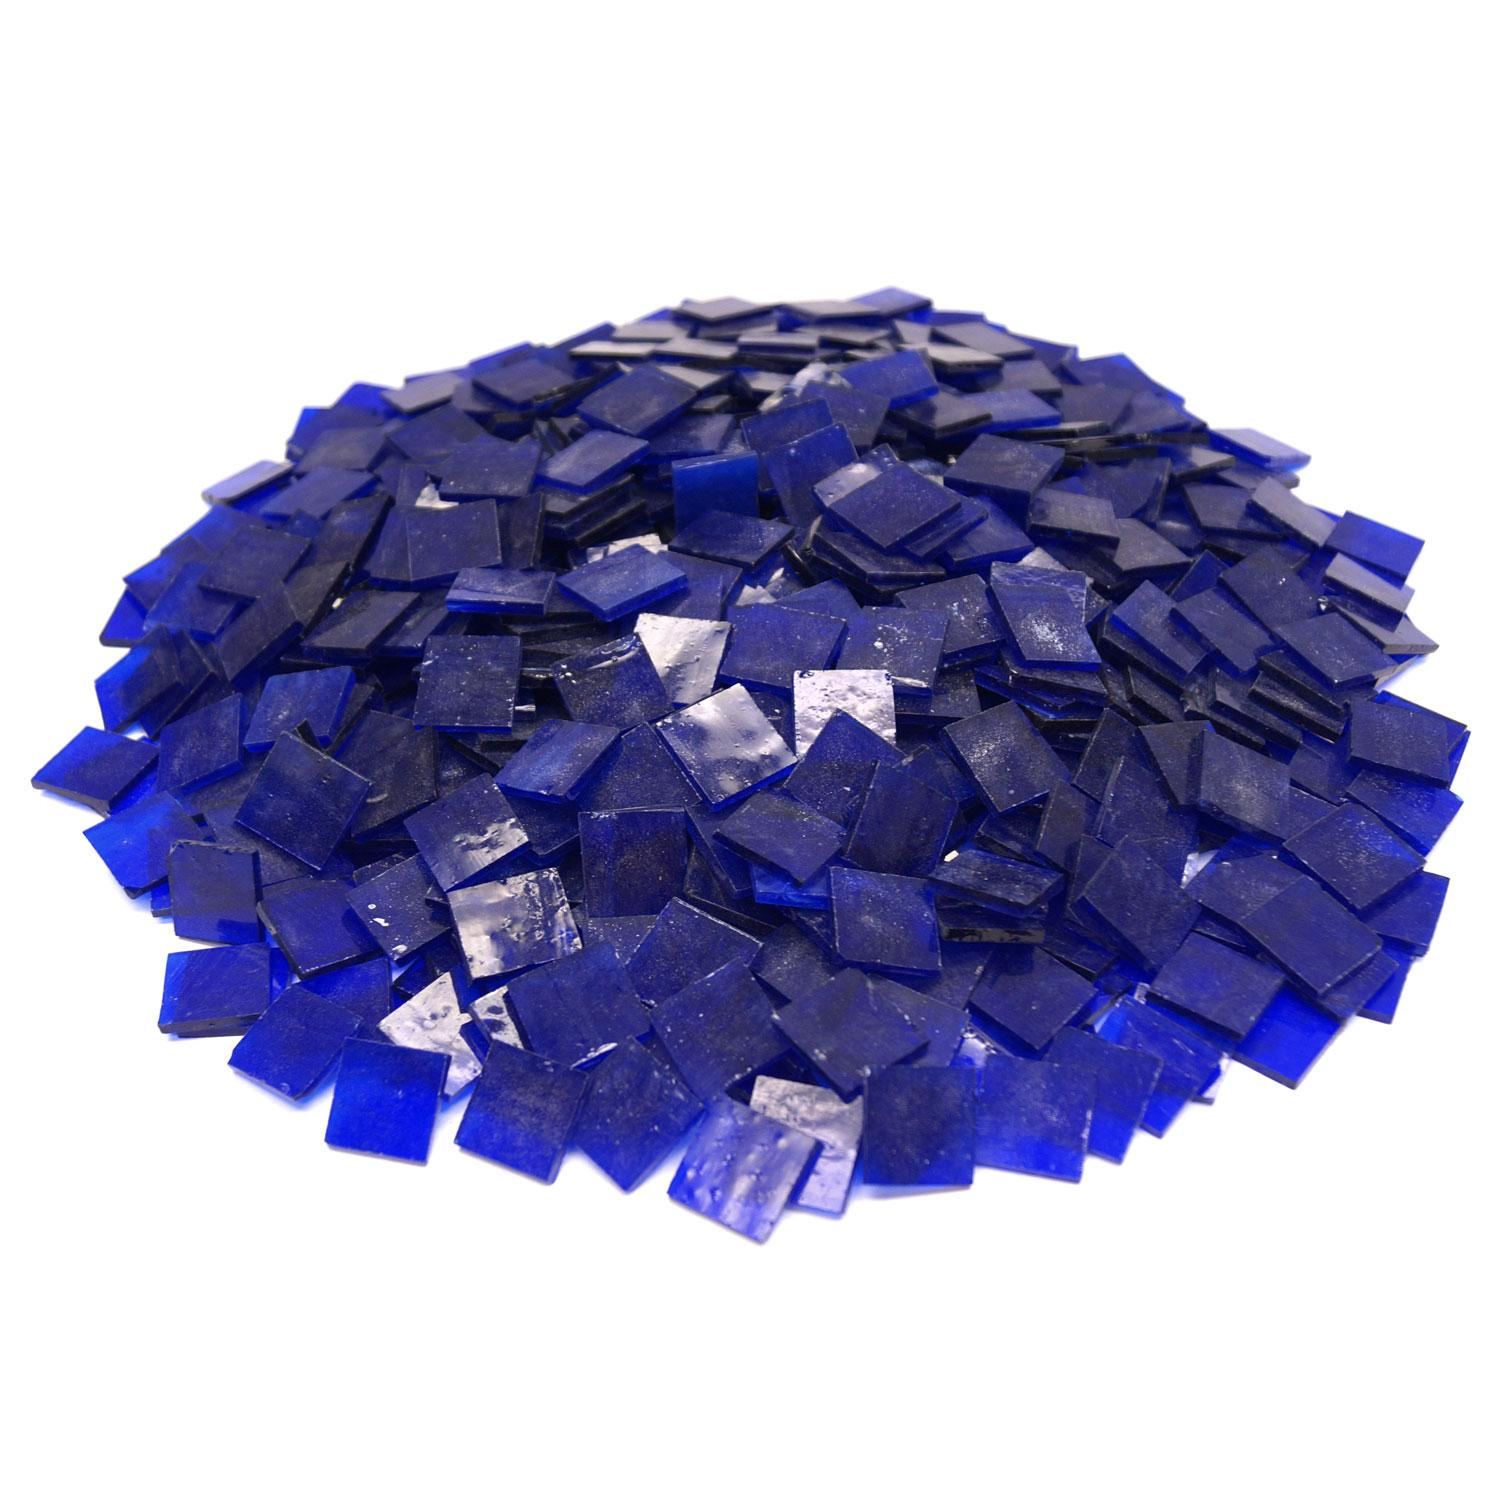 3/4 Blue Transparent Stained Glass Chips - 4 Lb